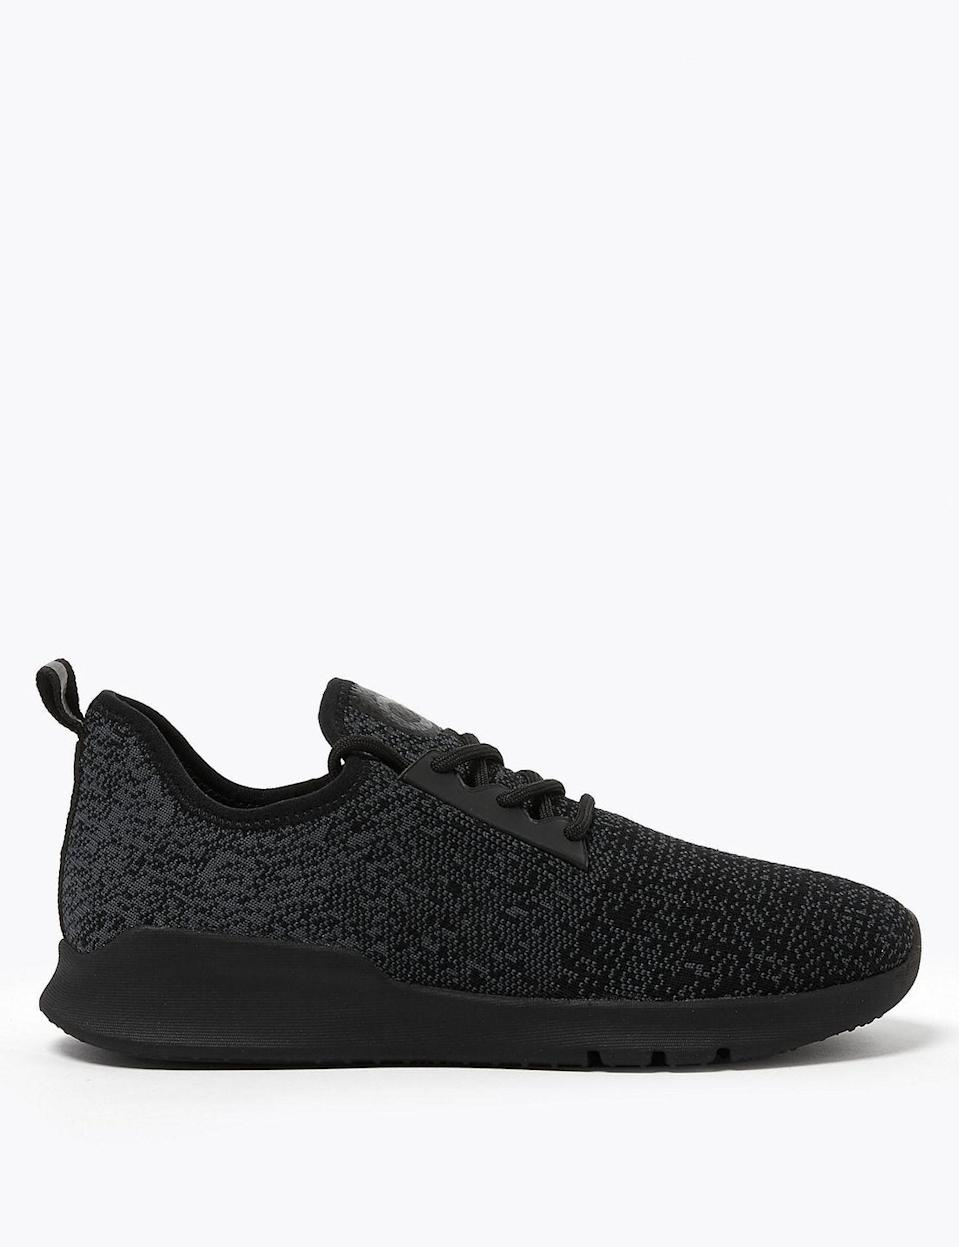 """<p><strong>Which style? </strong>Lace Up Knitted Trainers</p><p><strong>How much? </strong>£49.50</p><p><a class=""""link rapid-noclick-resp"""" href=""""https://go.redirectingat.com?id=127X1599956&url=https%3A%2F%2Fwww.marksandspencer.com%2Flace-up-knit-trainers%2Fp%2Fclp60370091%3Fcolor%3DBLACK%26awc%3D11548_1599125311_f96cb4e1947d838bfc55d88b06dfa445&sref=https%3A%2F%2Fwww.womenshealthmag.com%2Fuk%2Ffitness%2Fg28619284%2Fvegan-trainers%2F"""" rel=""""nofollow noopener"""" target=""""_blank"""" data-ylk=""""slk:SHOP NOW"""">SHOP NOW</a></p><p>The high street has really upped its game in the past year, with most stores offering at least one vegan option for shoppers. If you can't quite stretch to spenny sportswear brands, <a href=""""https://www.womenshealthmag.com/uk/gym-wear/a31093826/marks-and-spencer-activewear/"""" rel=""""nofollow noopener"""" target=""""_blank"""" data-ylk=""""slk:Marks & Spencer's"""" class=""""link rapid-noclick-resp"""">Marks & Spencer's</a> running trainers are a great alternative.</p><p>Set on a shock-absorbing wedge sole, this vegan running shoe is crafted in a slip-on shape from knitted Tencel™ fibres (derived from wood pulp, double brownie points for M&S).</p><p>Choose from black, marl grey or pink.</p>"""